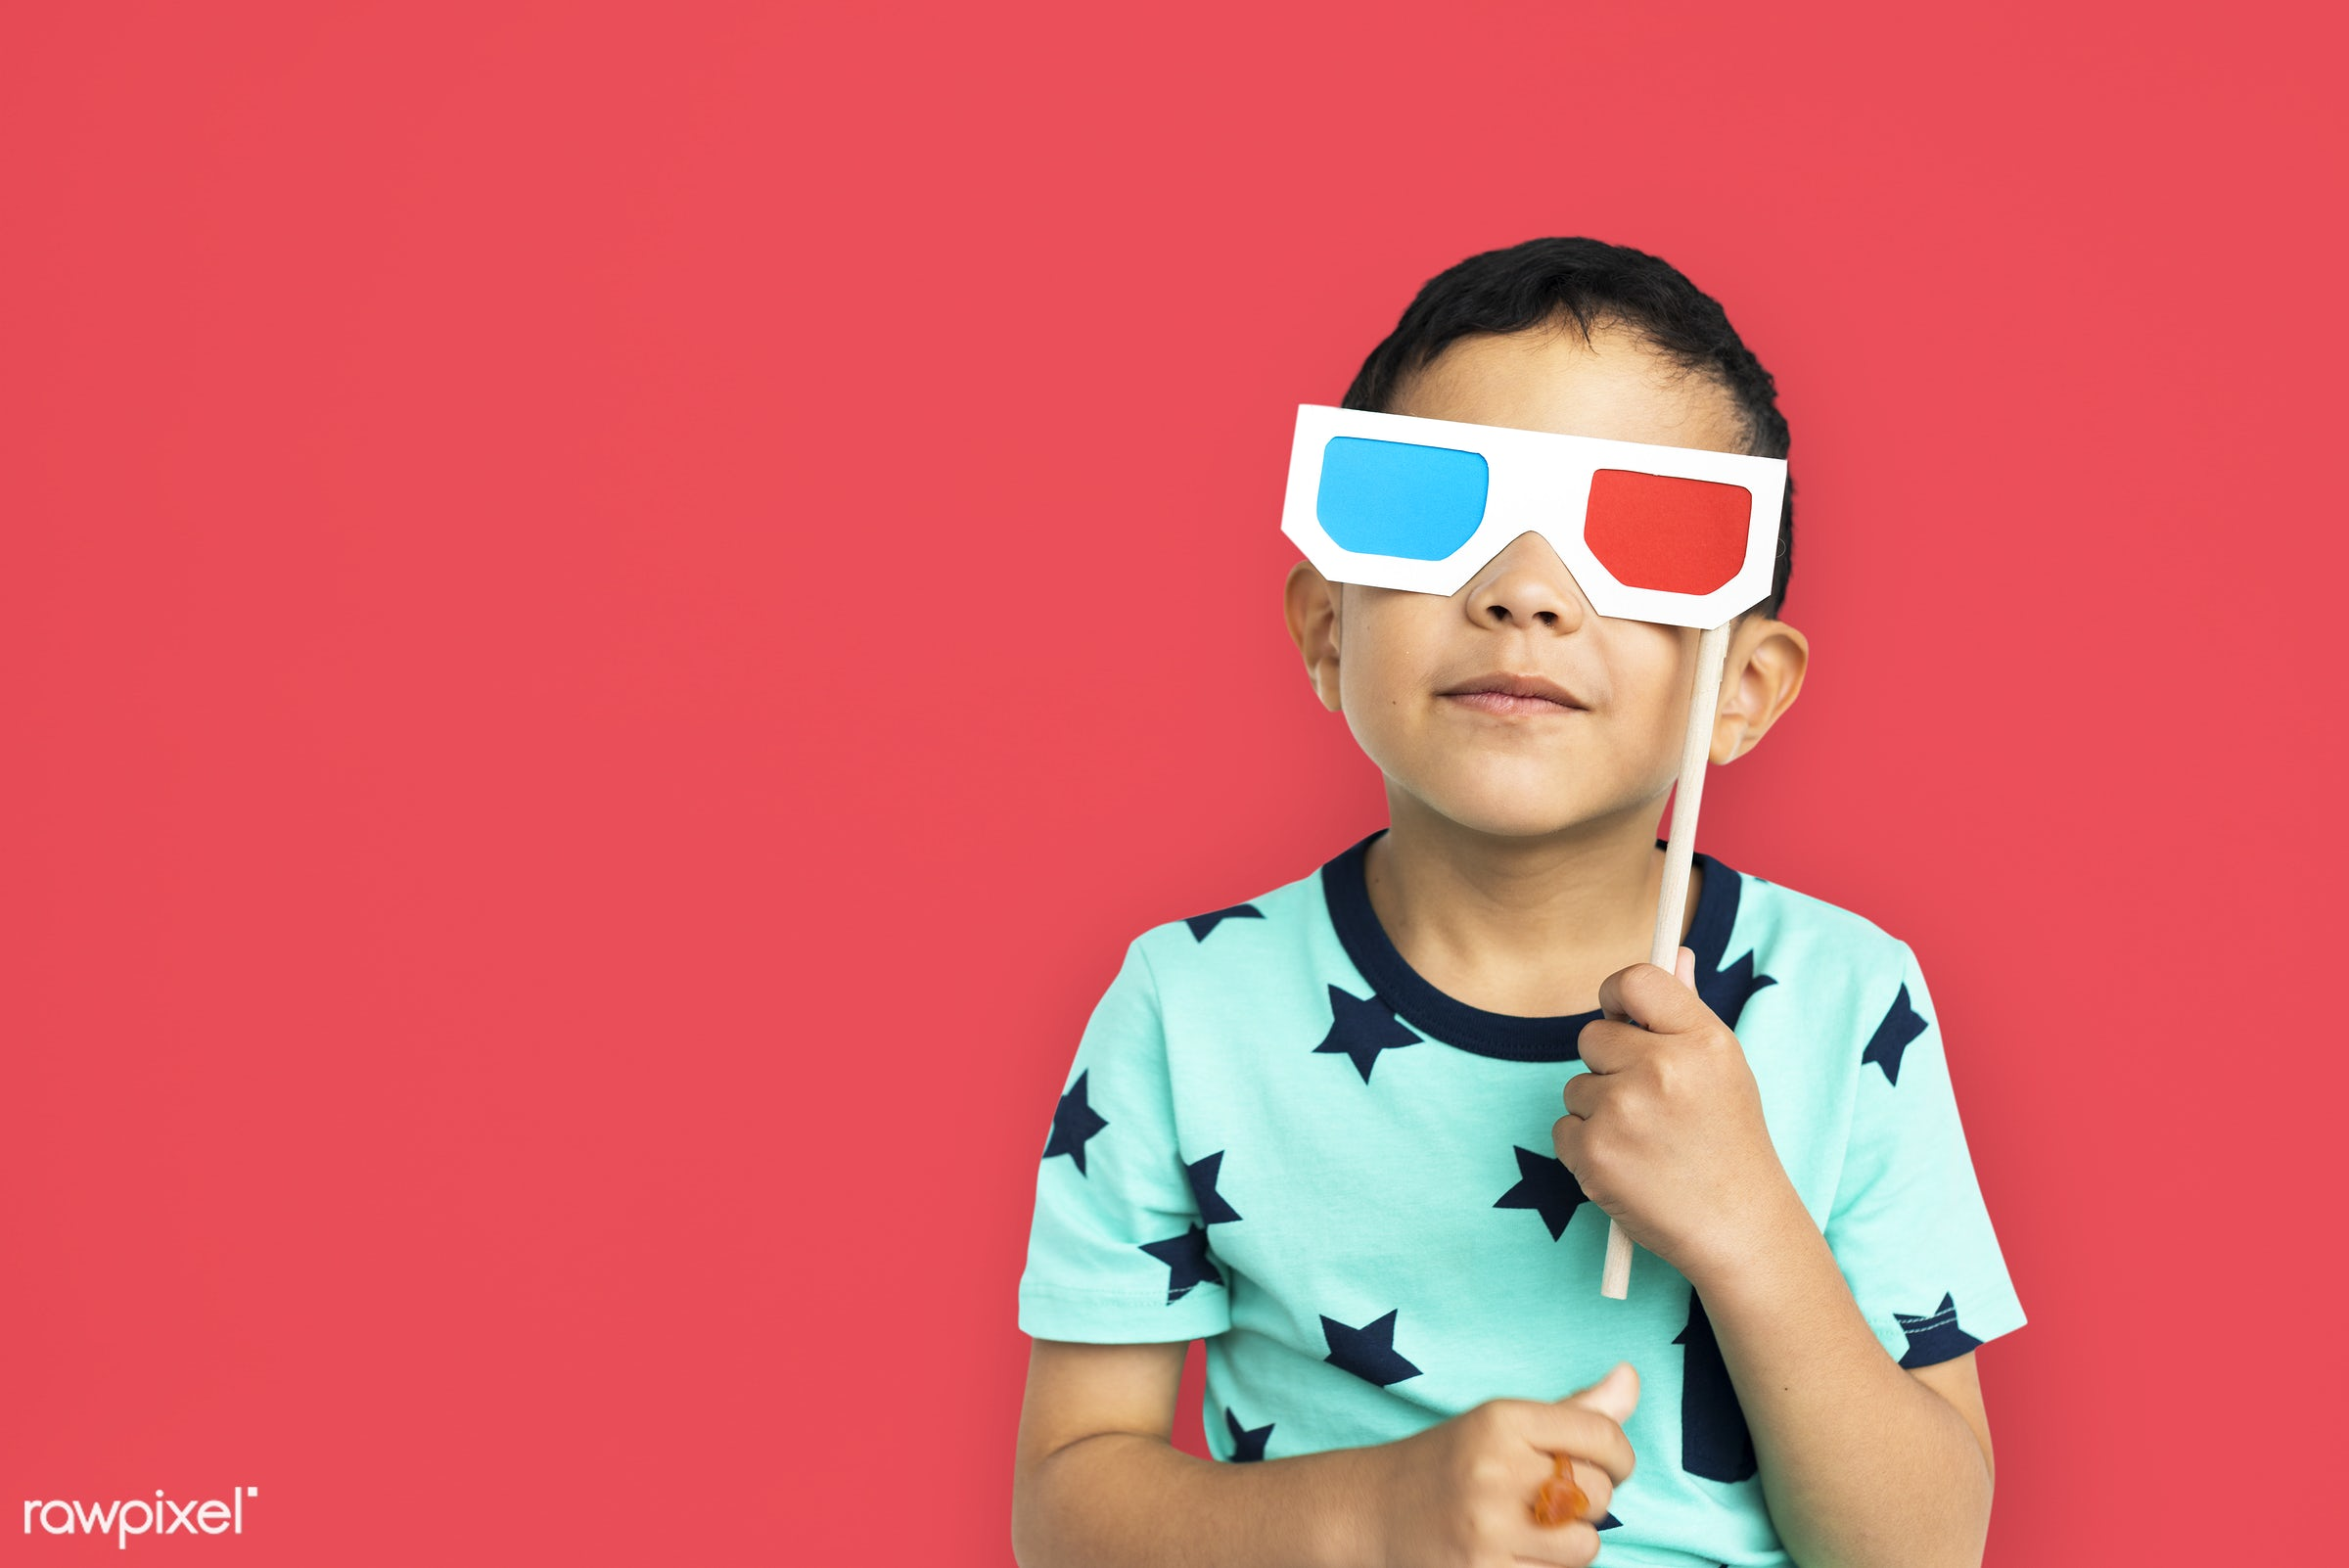 studio, expression, person, glasses, joy, little, cute, 3d glasses, people, kid, child, joyous, happy, cheerful, isolated,...